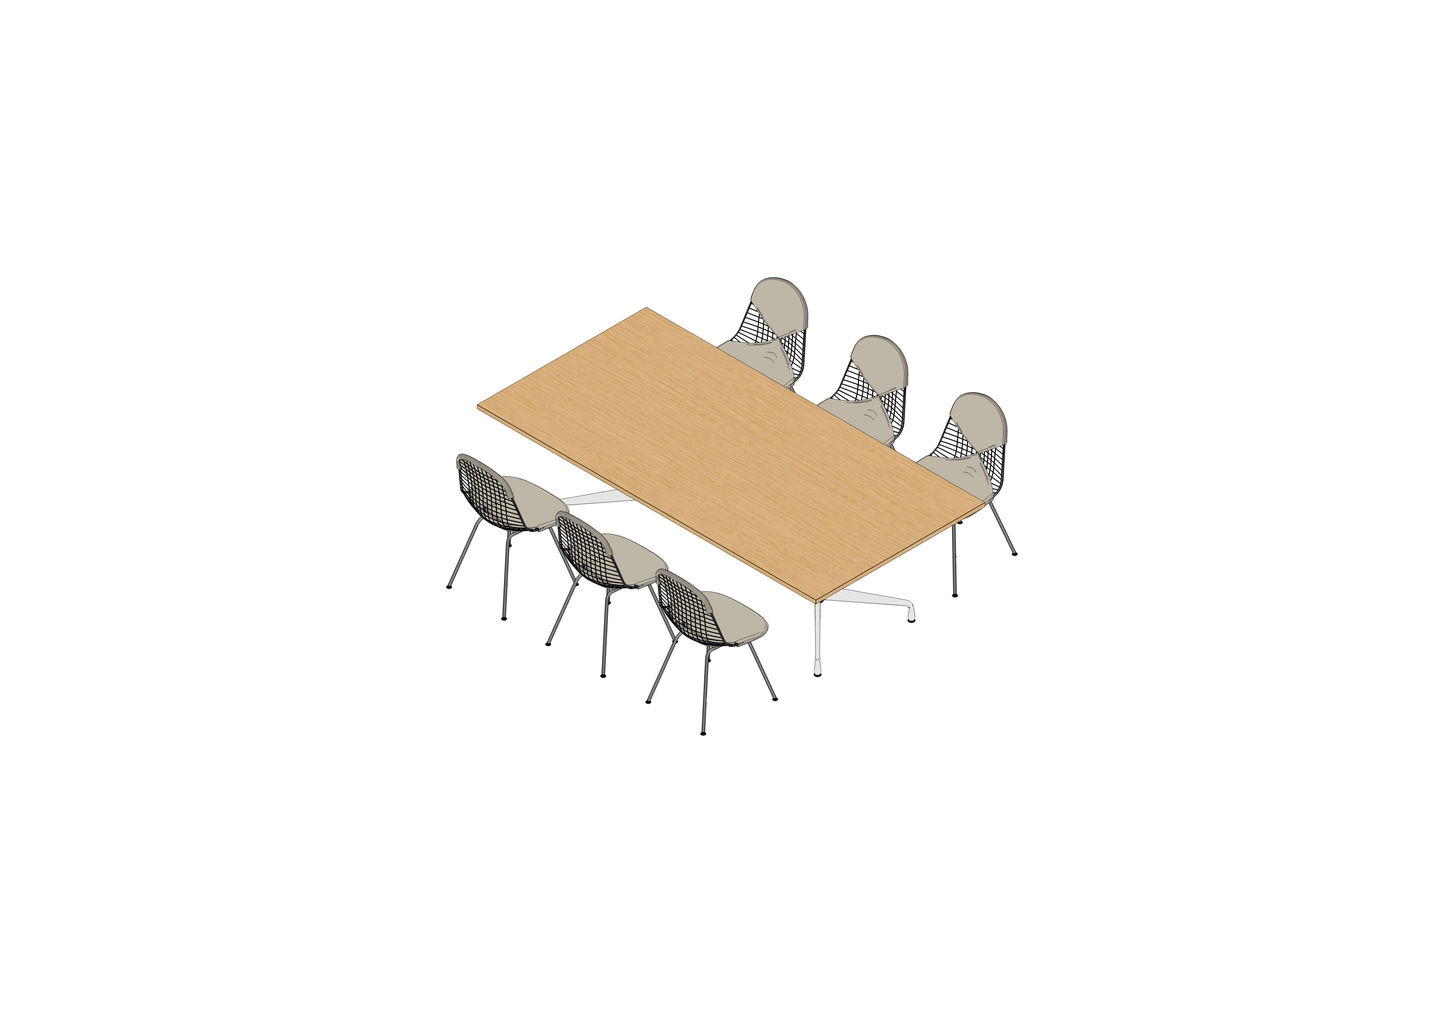 08 - Eames Segmented Table 240 x 120, Wire Chair -3D